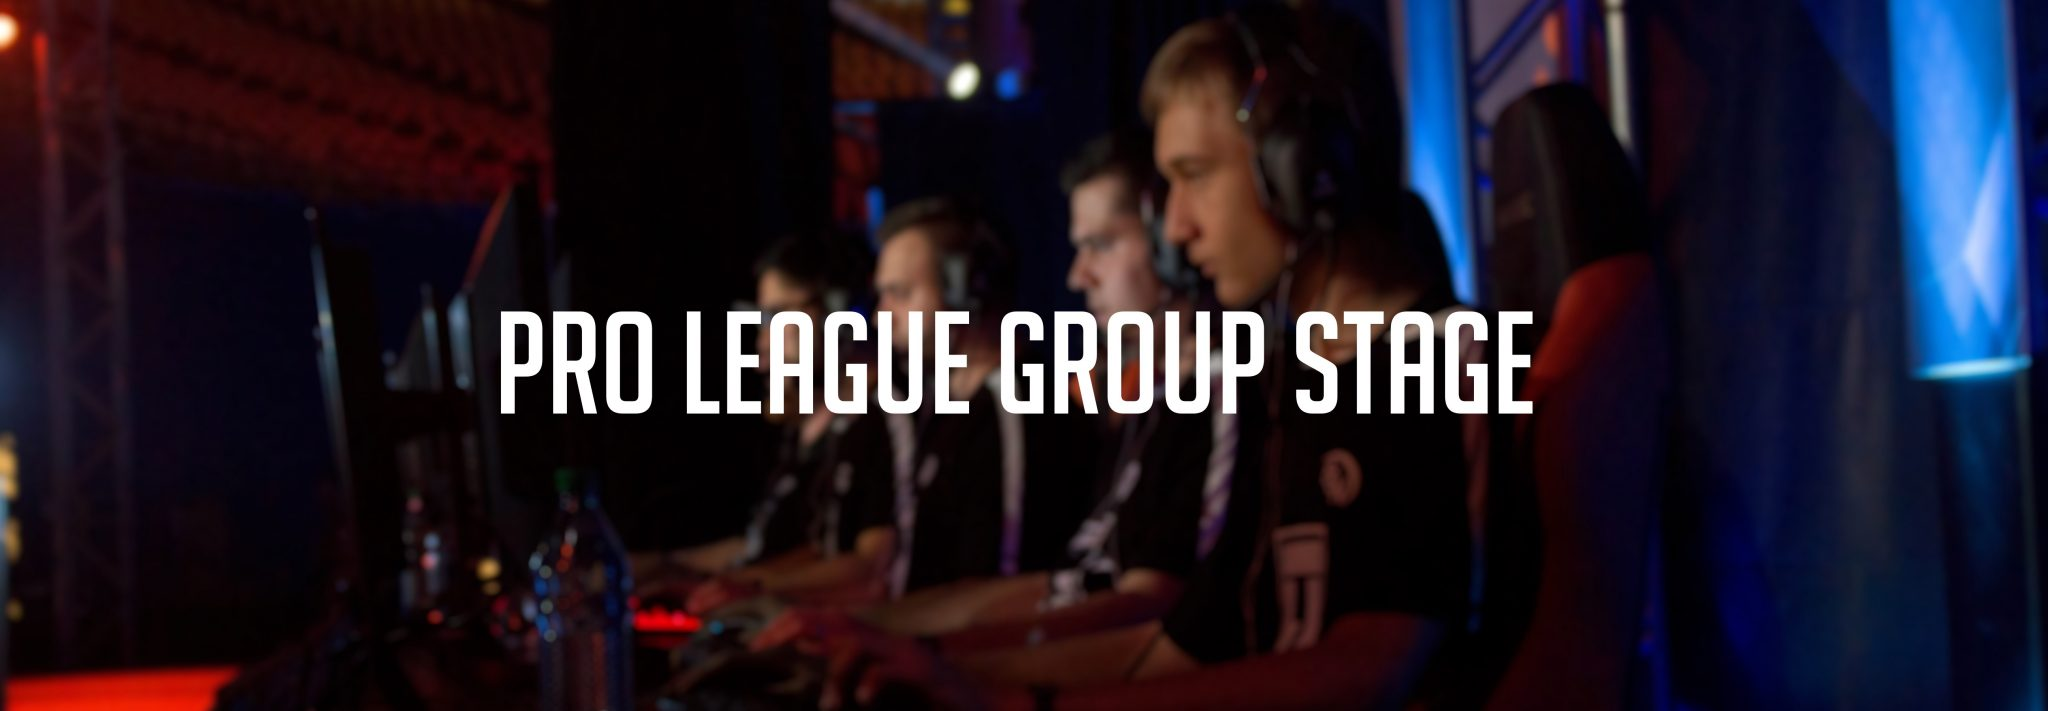 DreamHack Pro League Group Stage